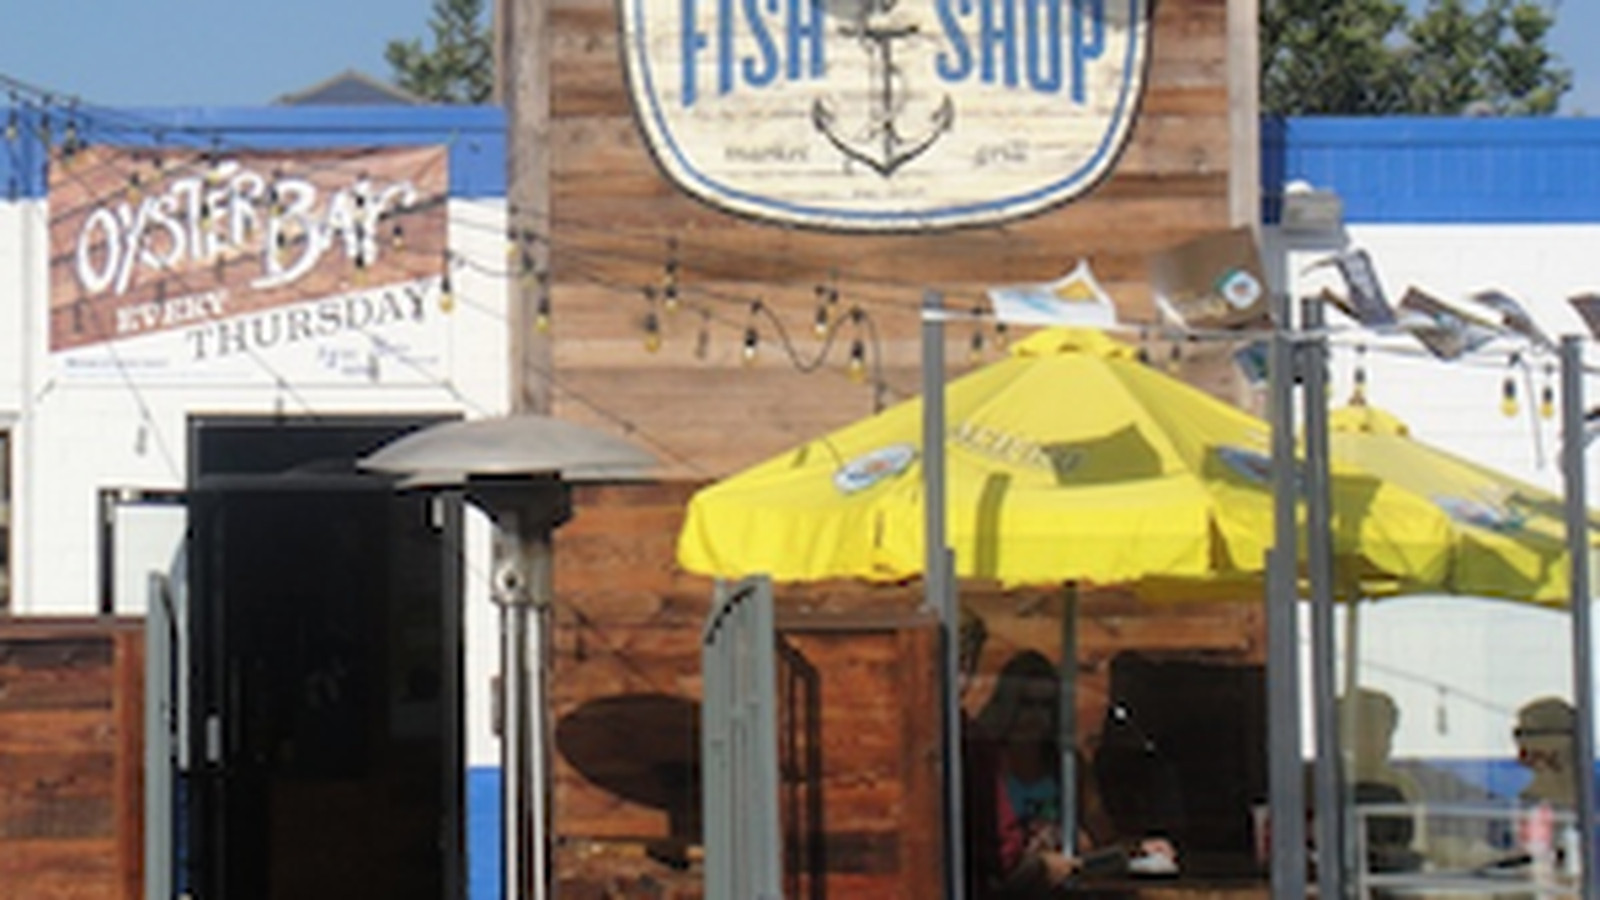 Pacific beach fish shop to spawn in encinitas beyond for Fish store san francisco